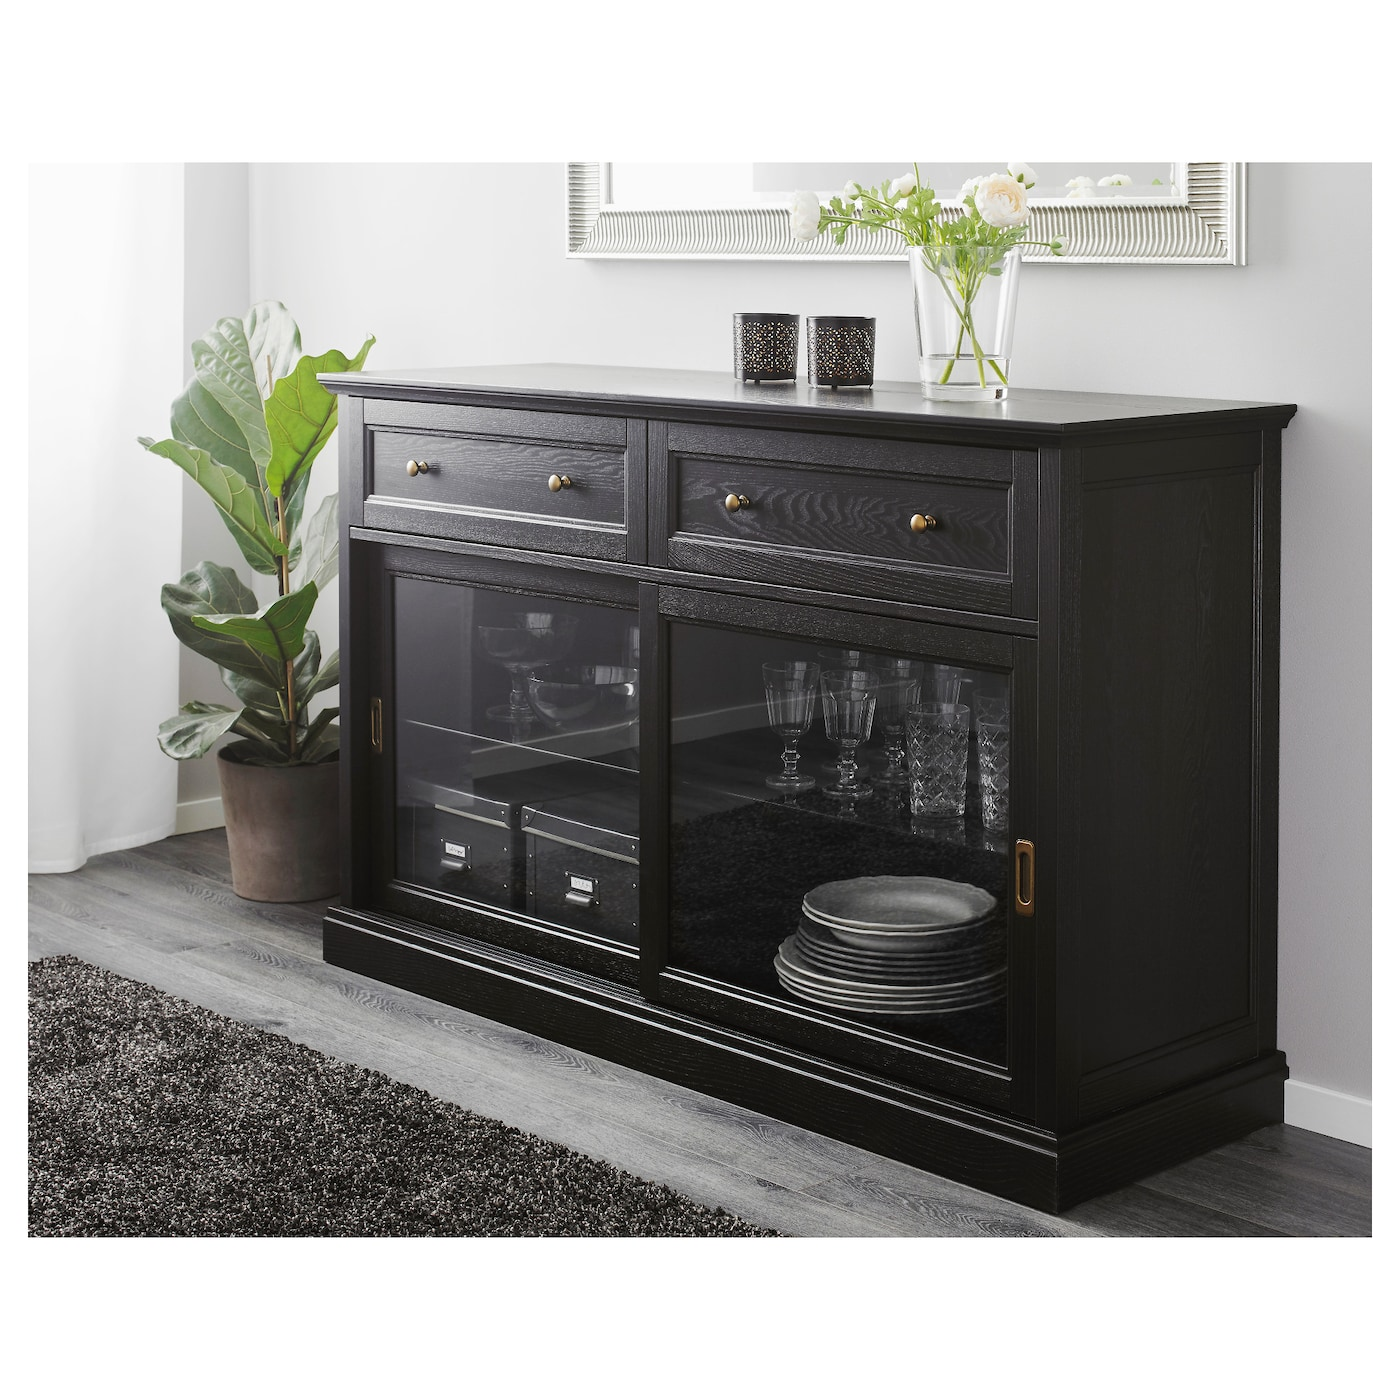 Malsj sideboard basic unit black stained 145x92 cm ikea for Sideboard ikea